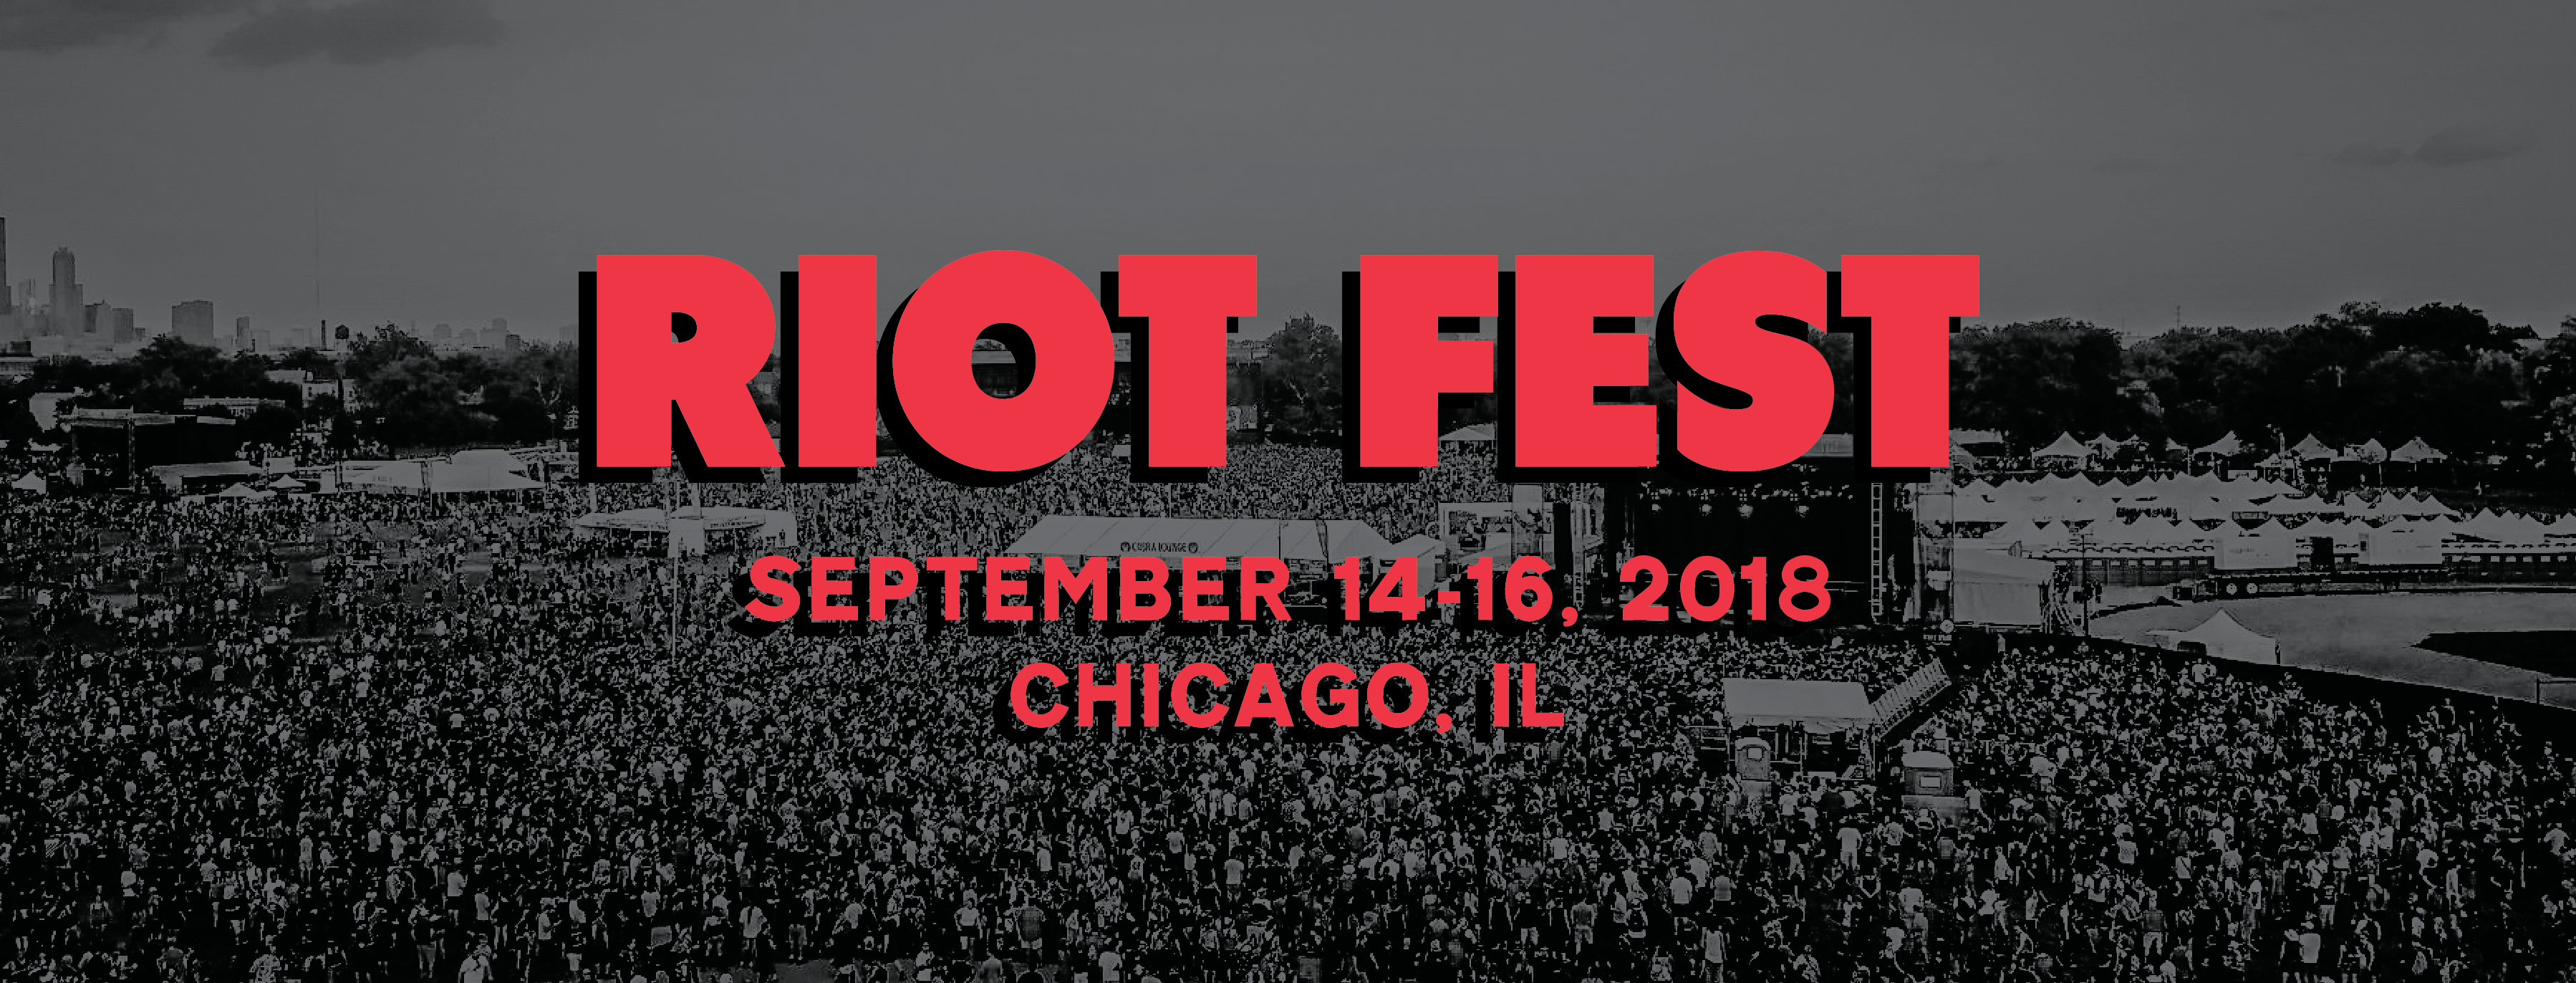 Riot Fest adds Weezer, Taking Back Sunday, Run the Jewels to replace blink-182